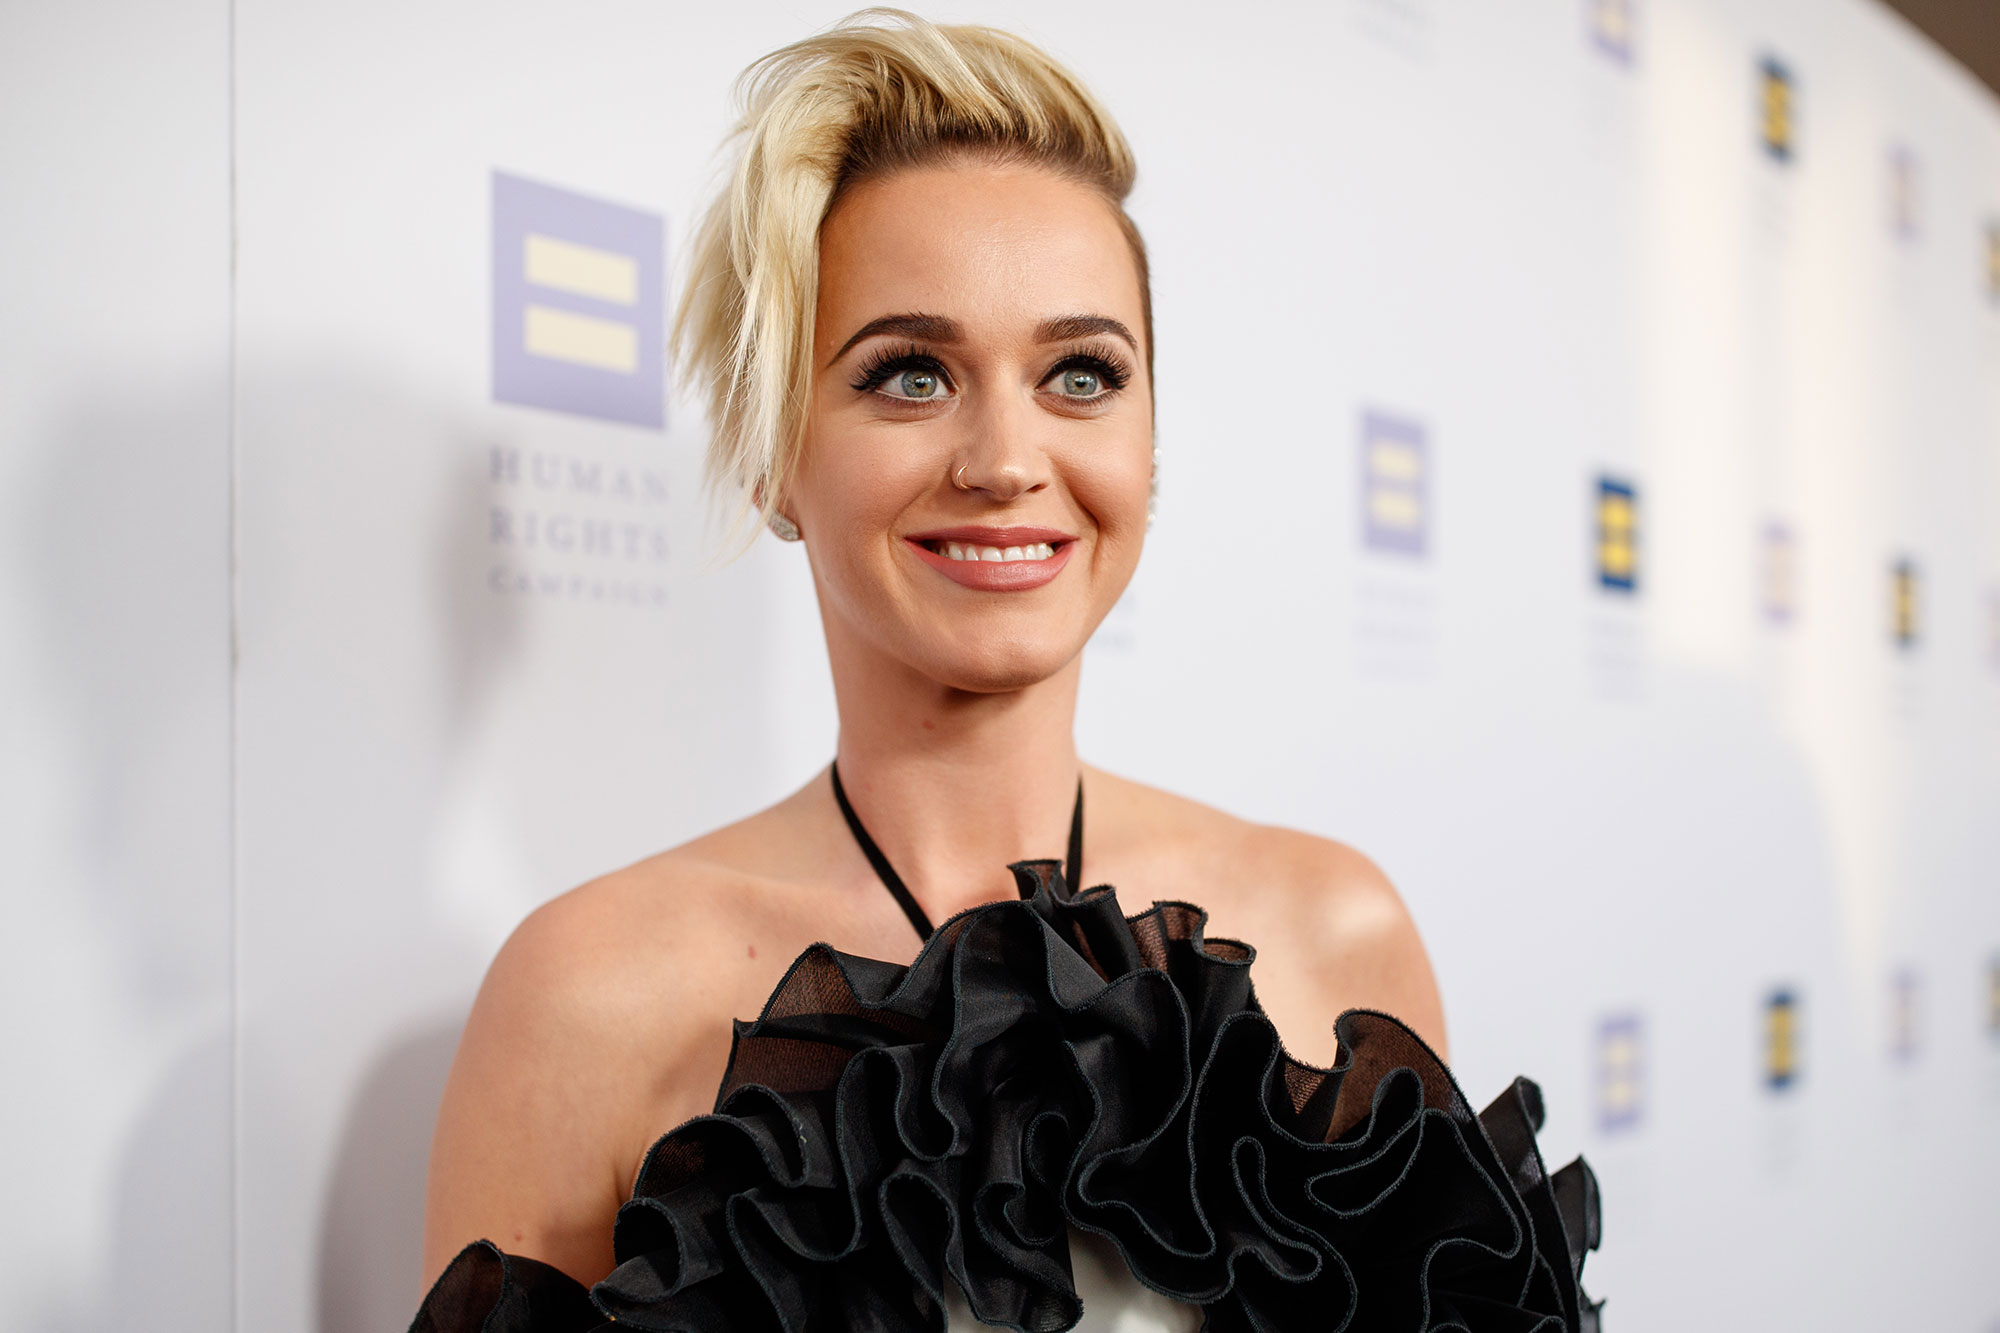 Katy Perry Teases Her New Song with the 'World's Best Cherry Pie' Recipe